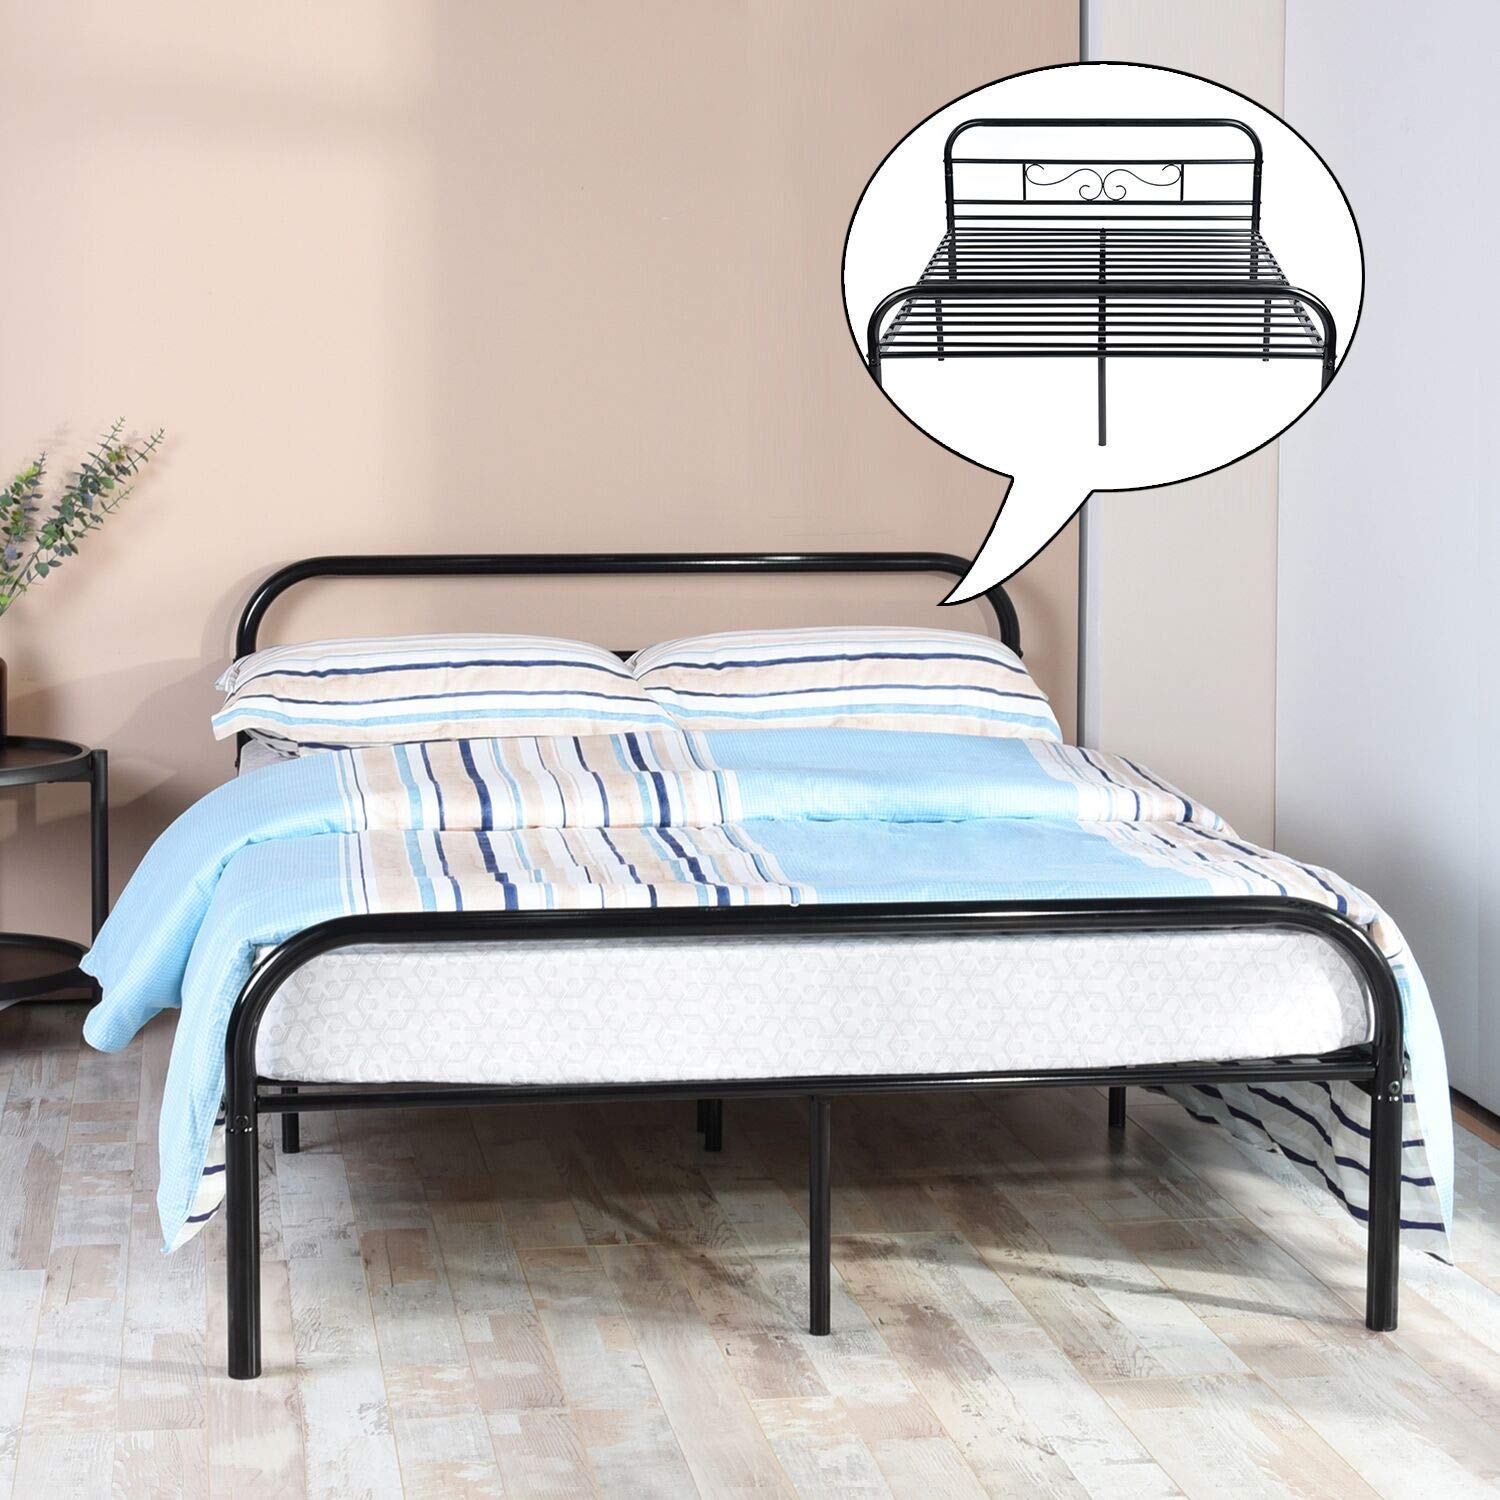 Aingoo Lit Simple En Metal Design 1 Place Cadre De Lit Simple Avec